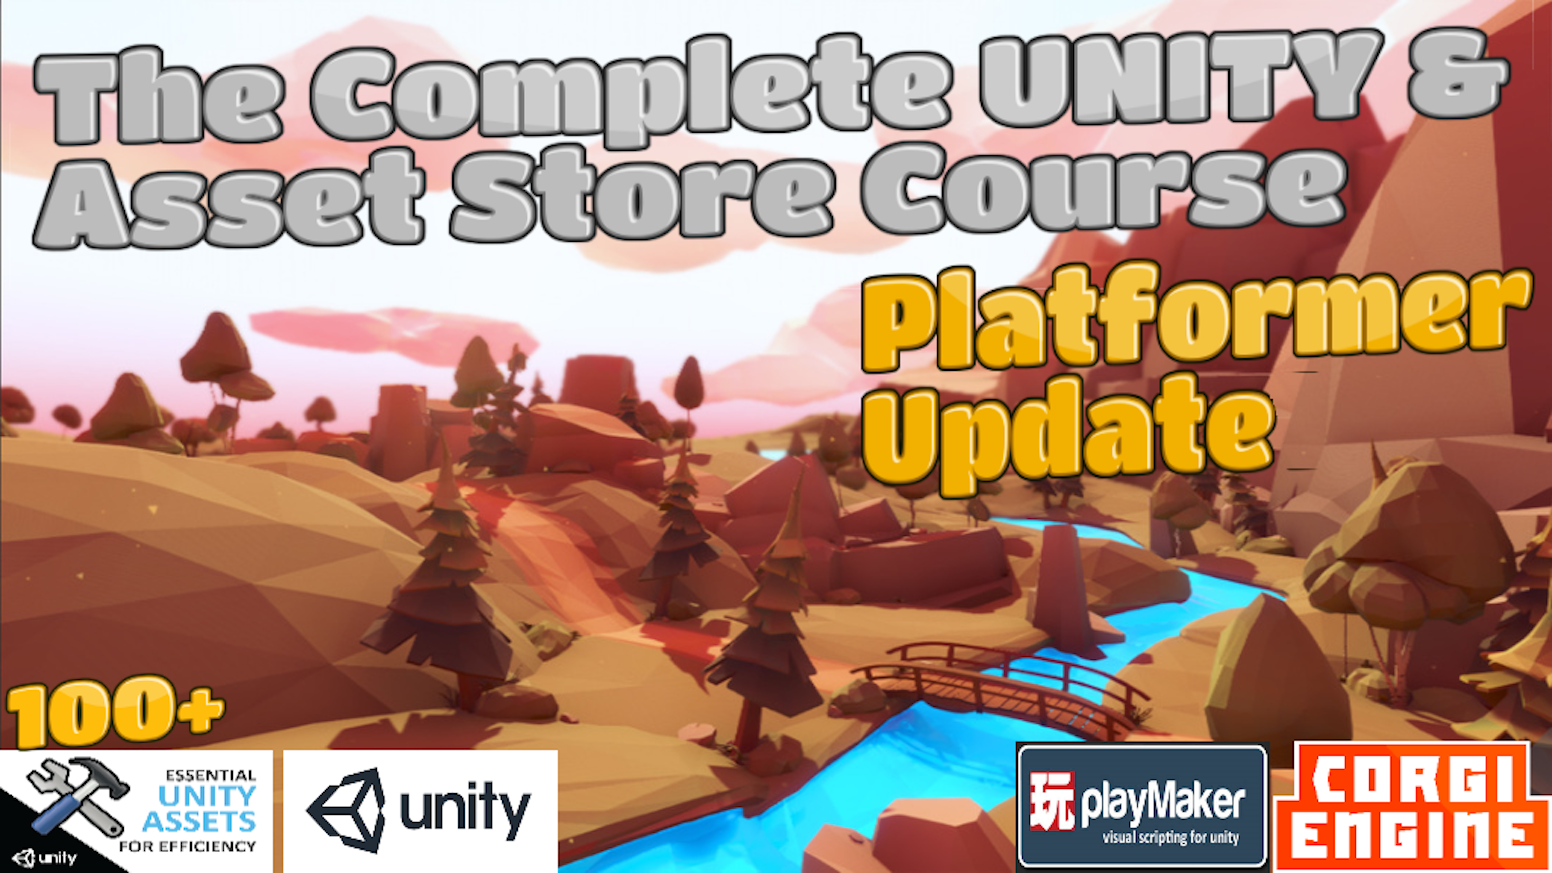 The Complete UNITY Developer Course: Platfomer Update by WeAreGames